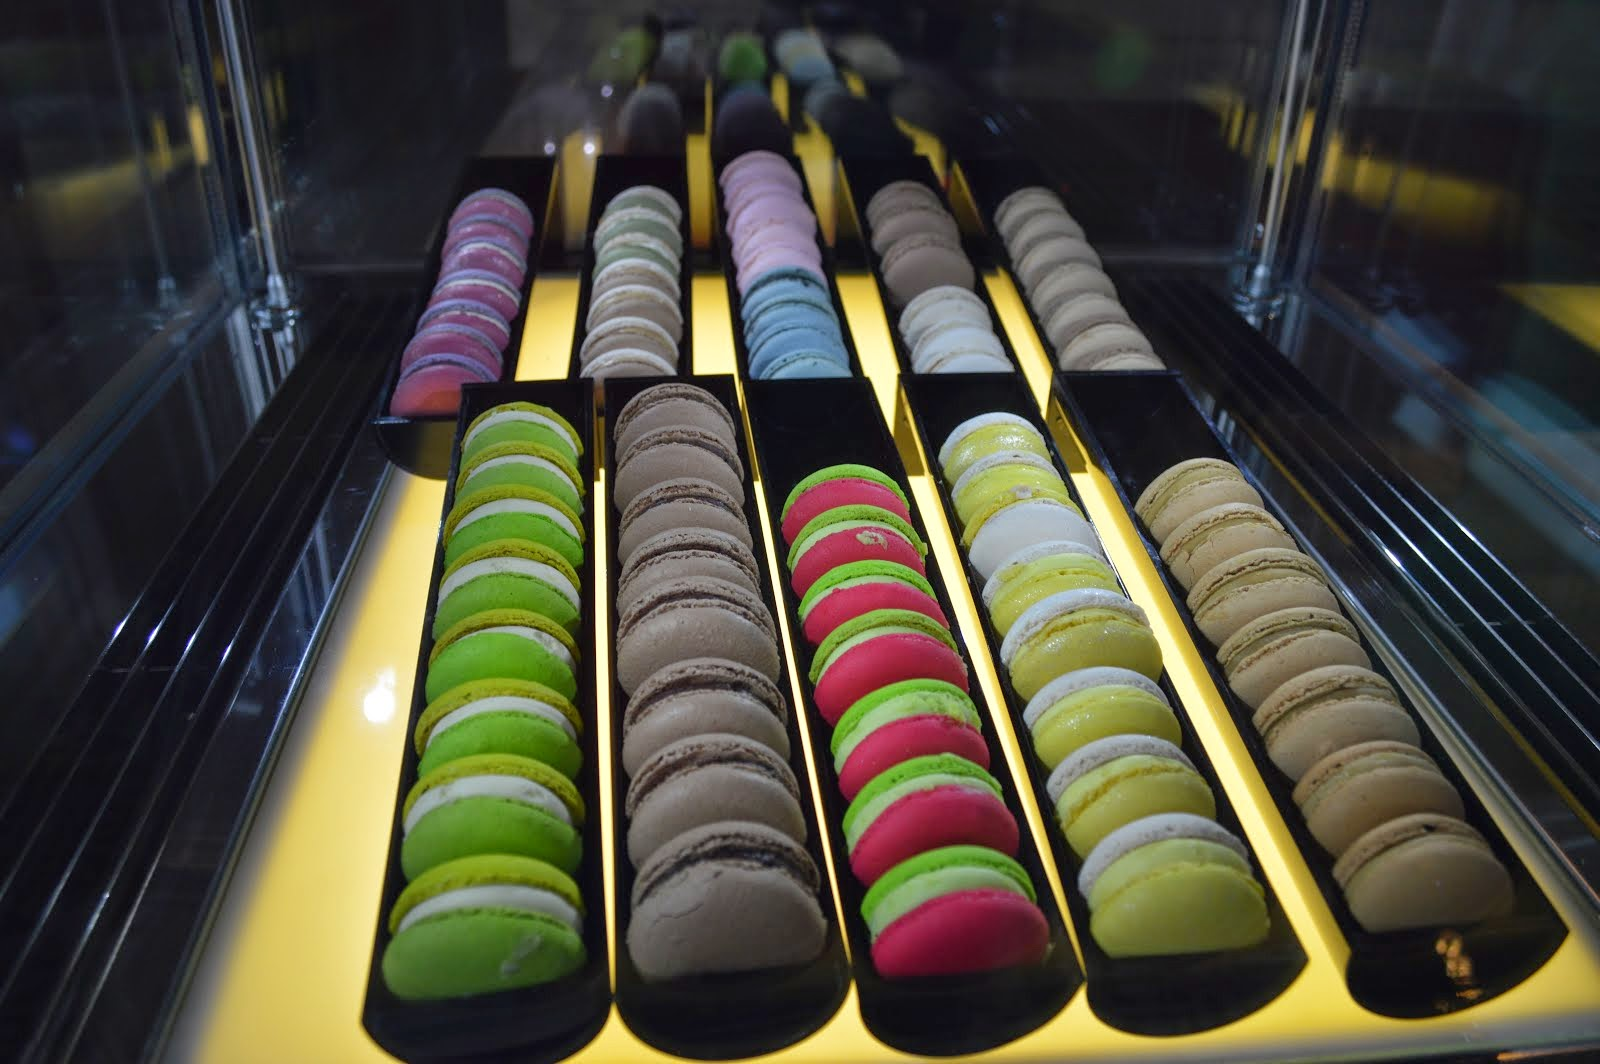 Macarons at the Oriental Hotel